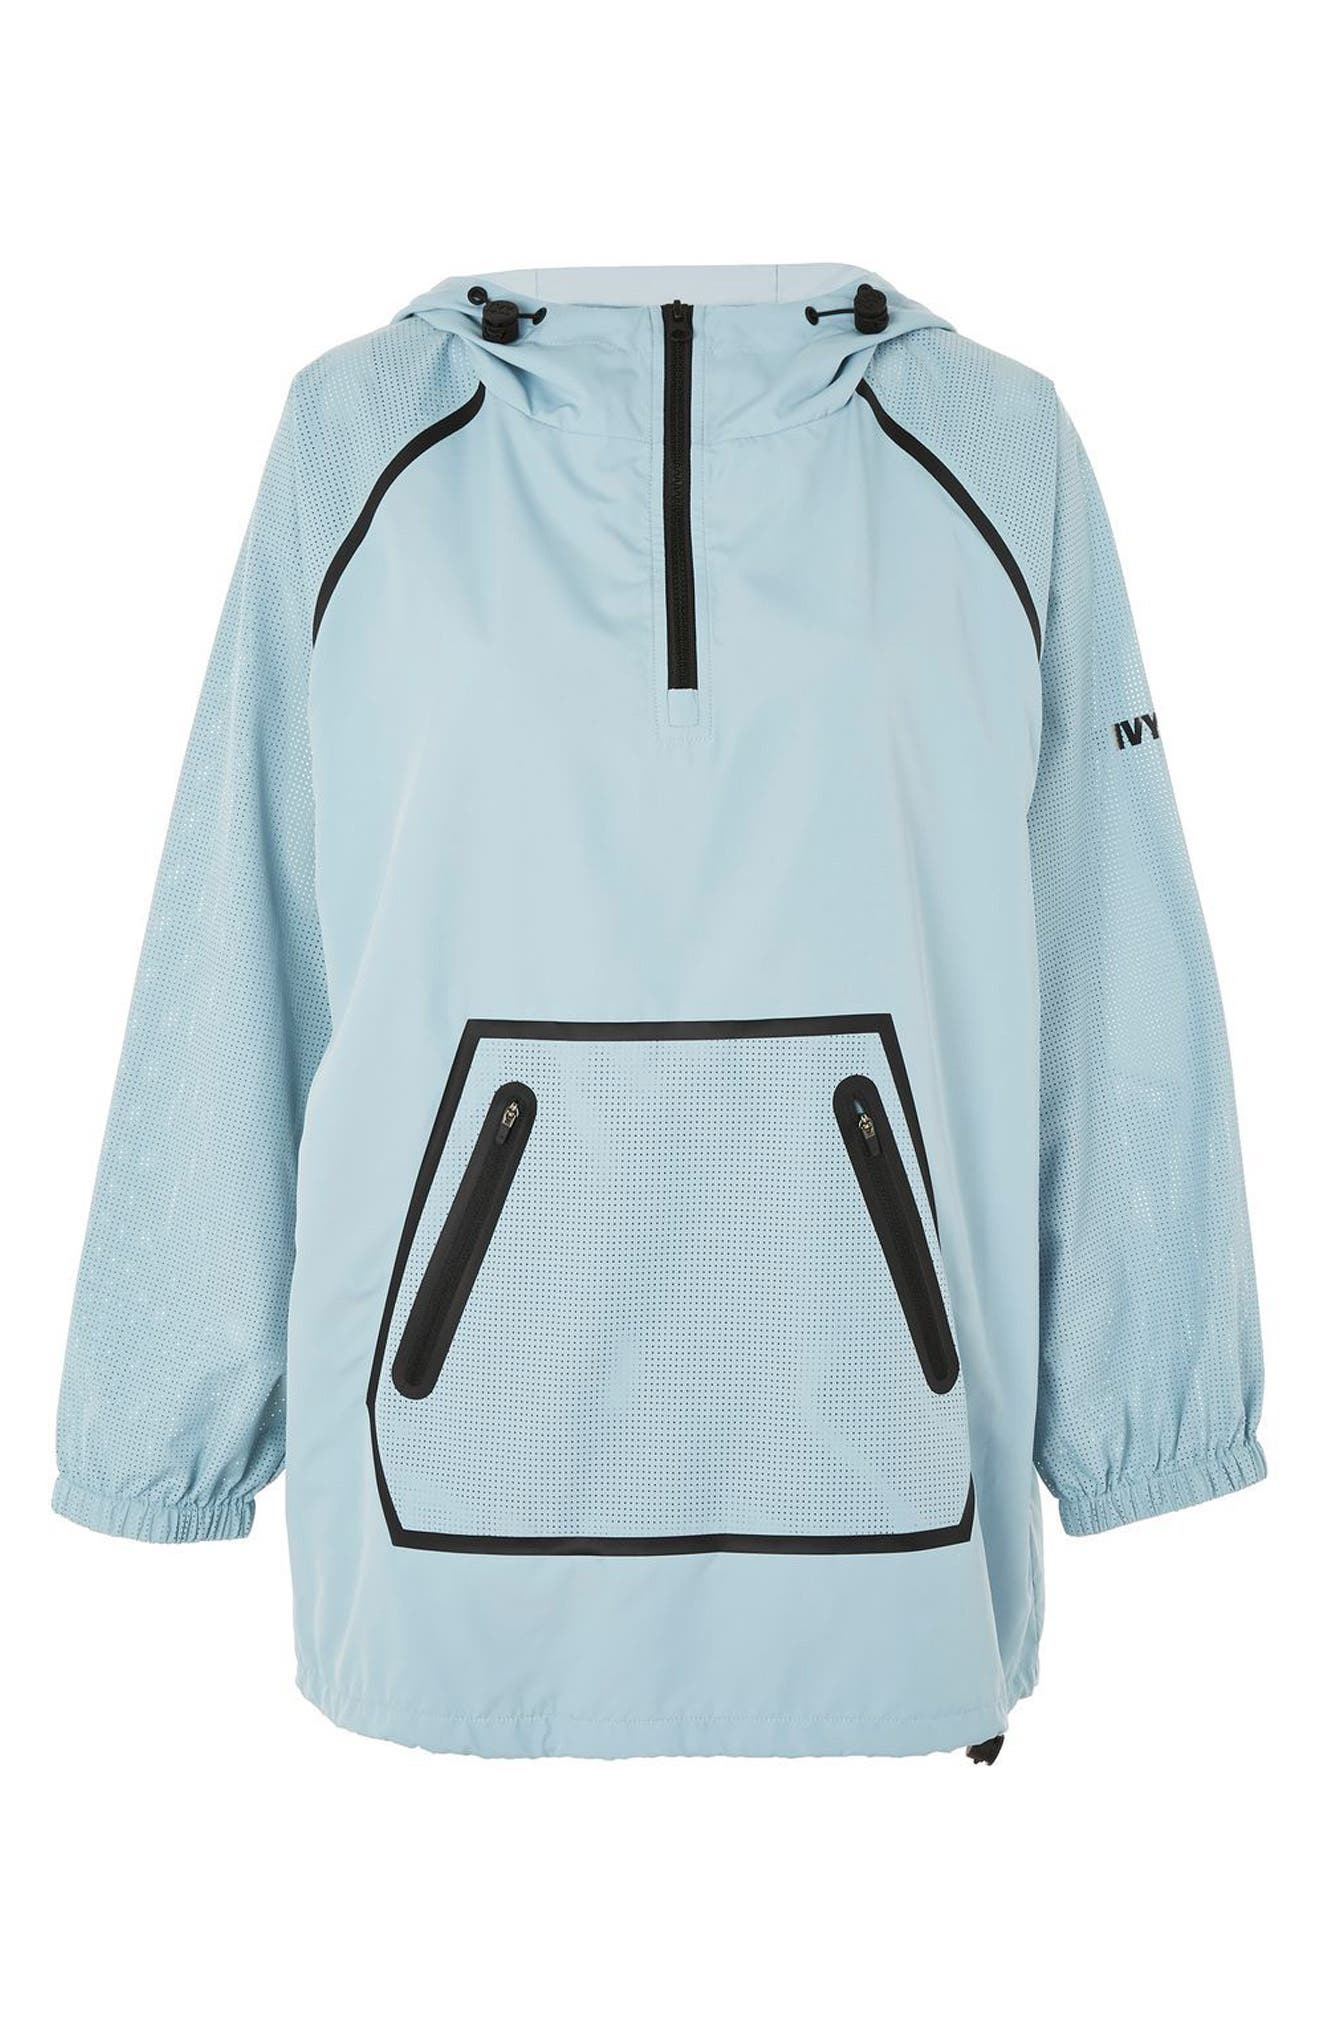 Perforated Pullover Jacket,                             Alternate thumbnail 4, color,                             400